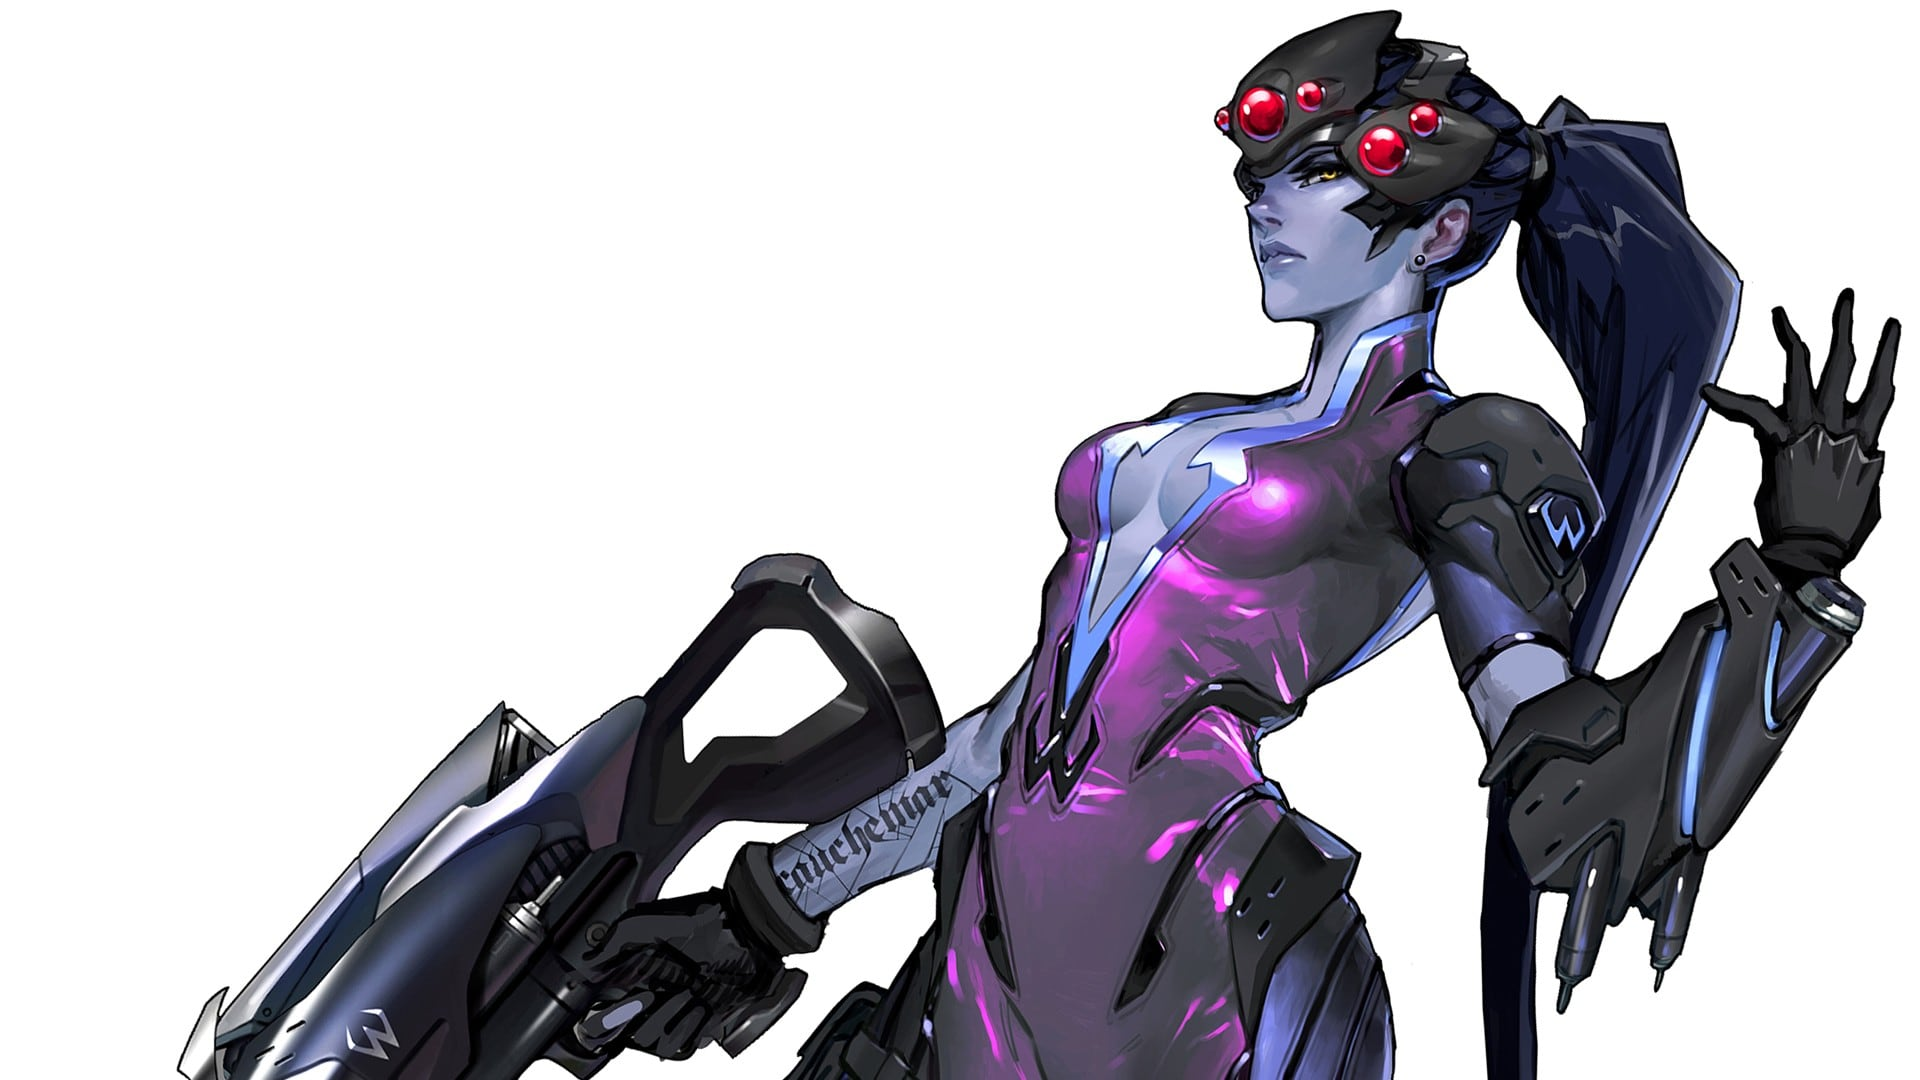 Overwatch : Widowmaker Wallpapers hd